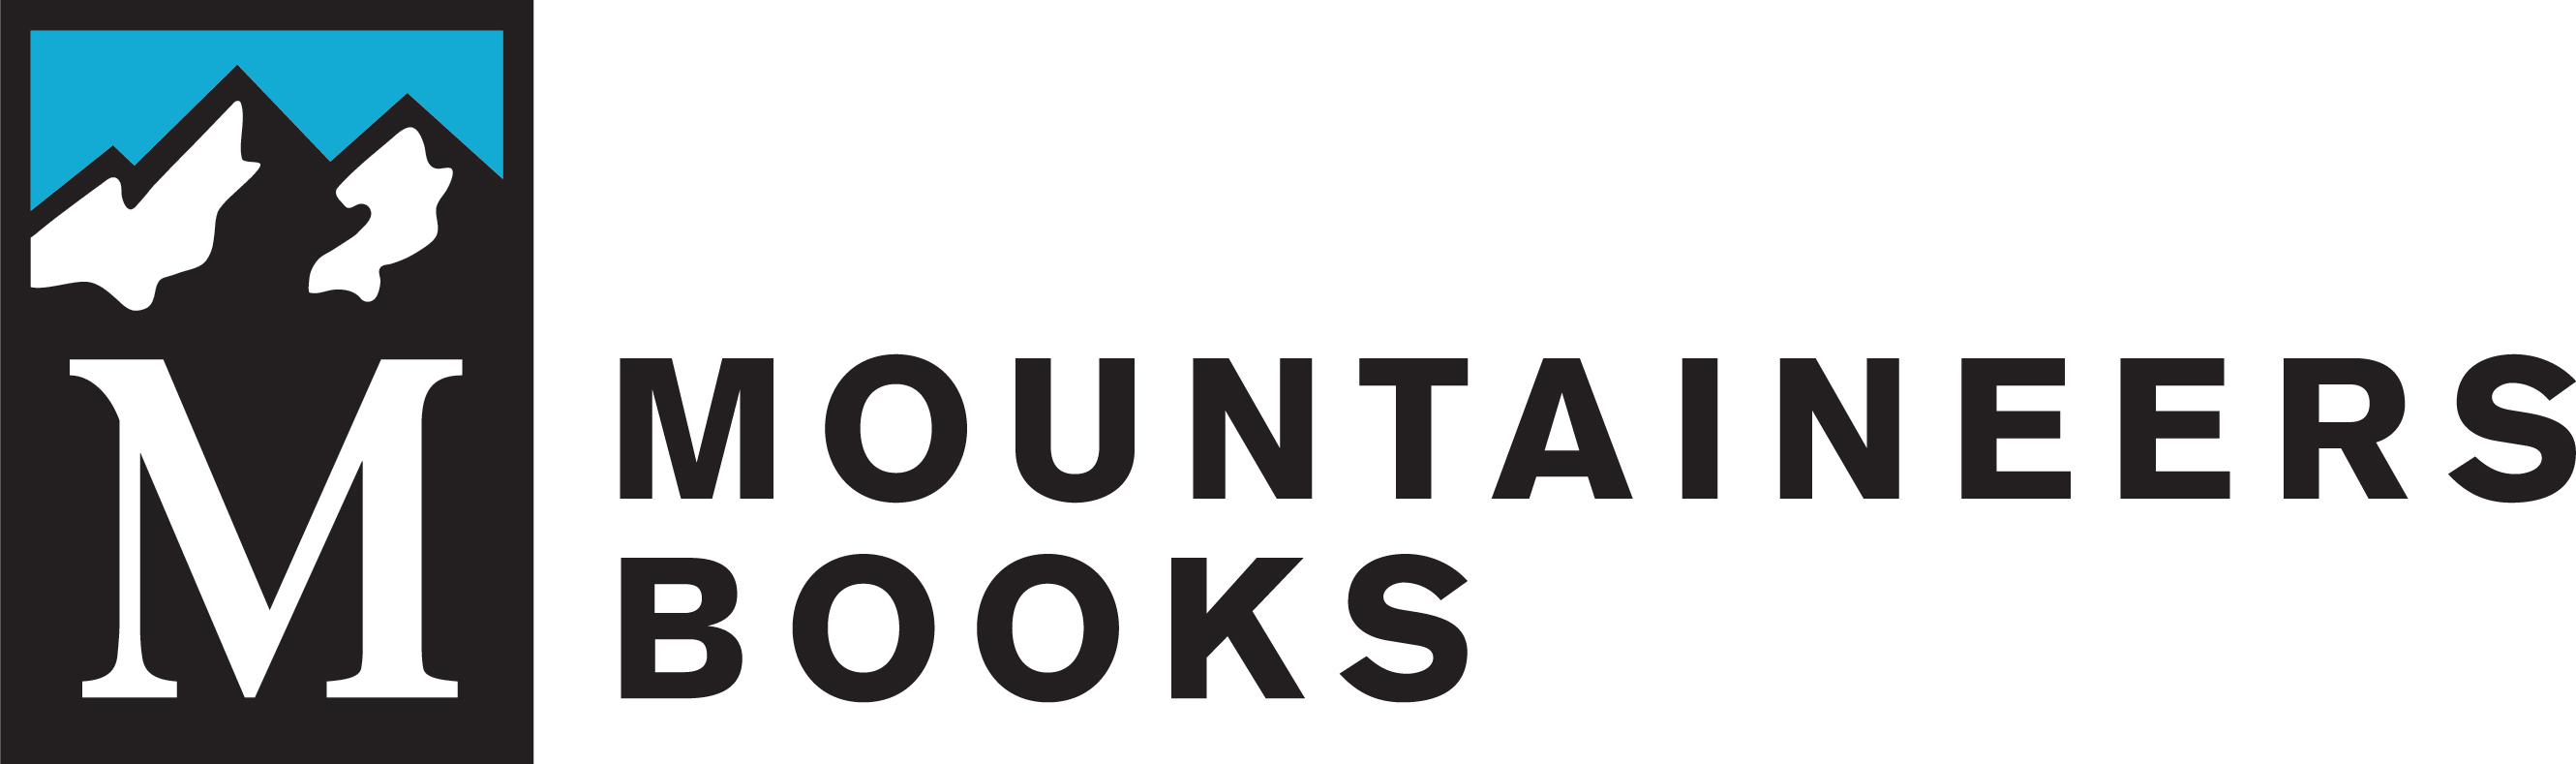 Mountaineers Books